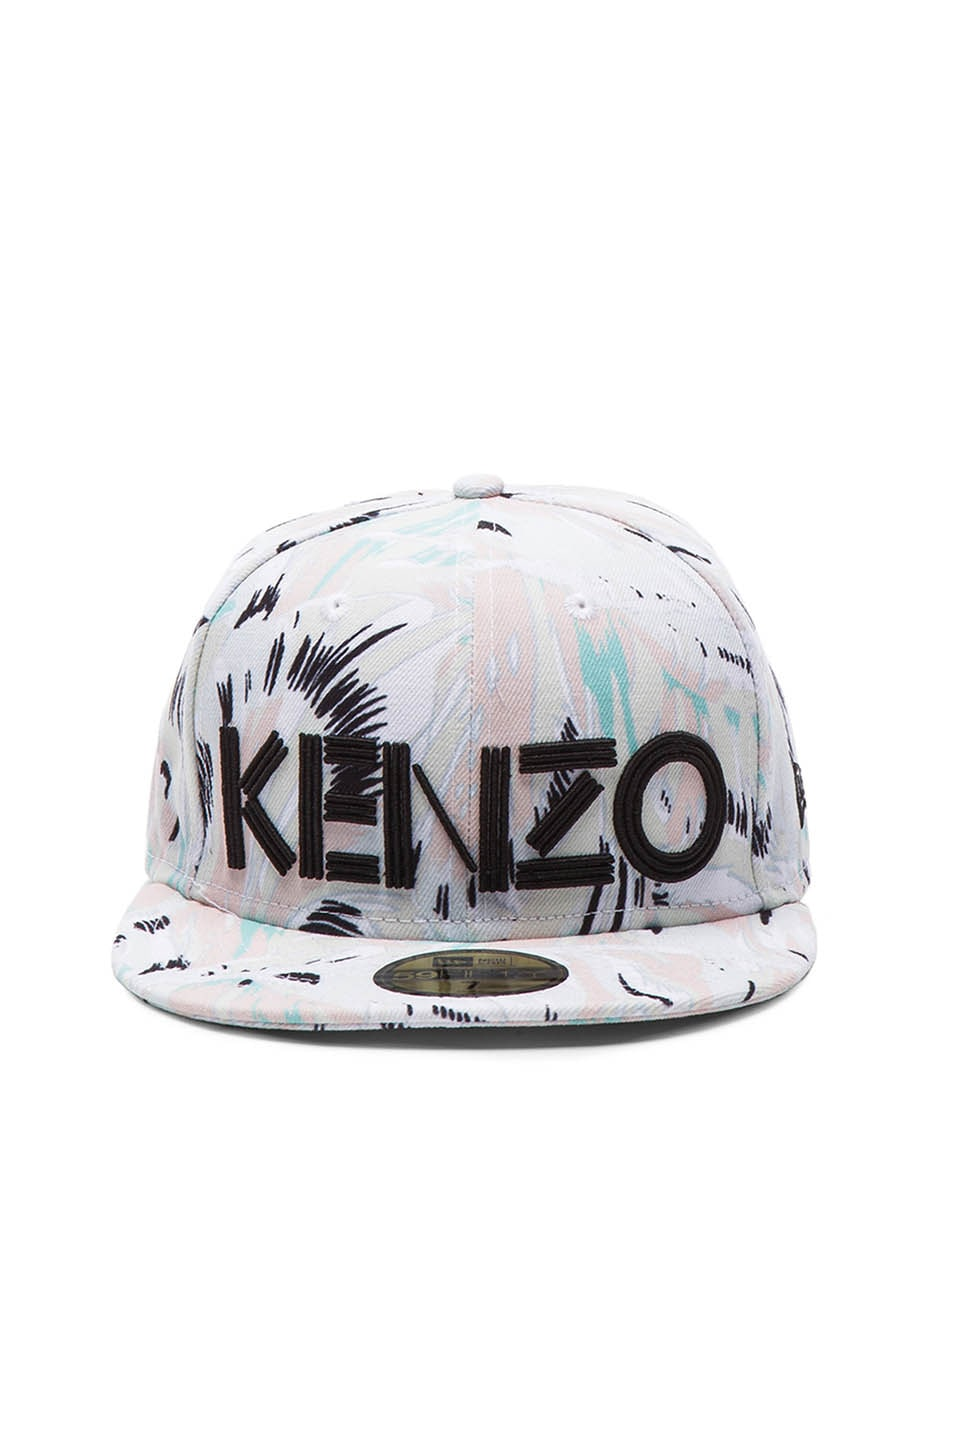 Image 1 of Kenzo x New Era Torn Flowers Hat in White Multi 5a80824b6f0